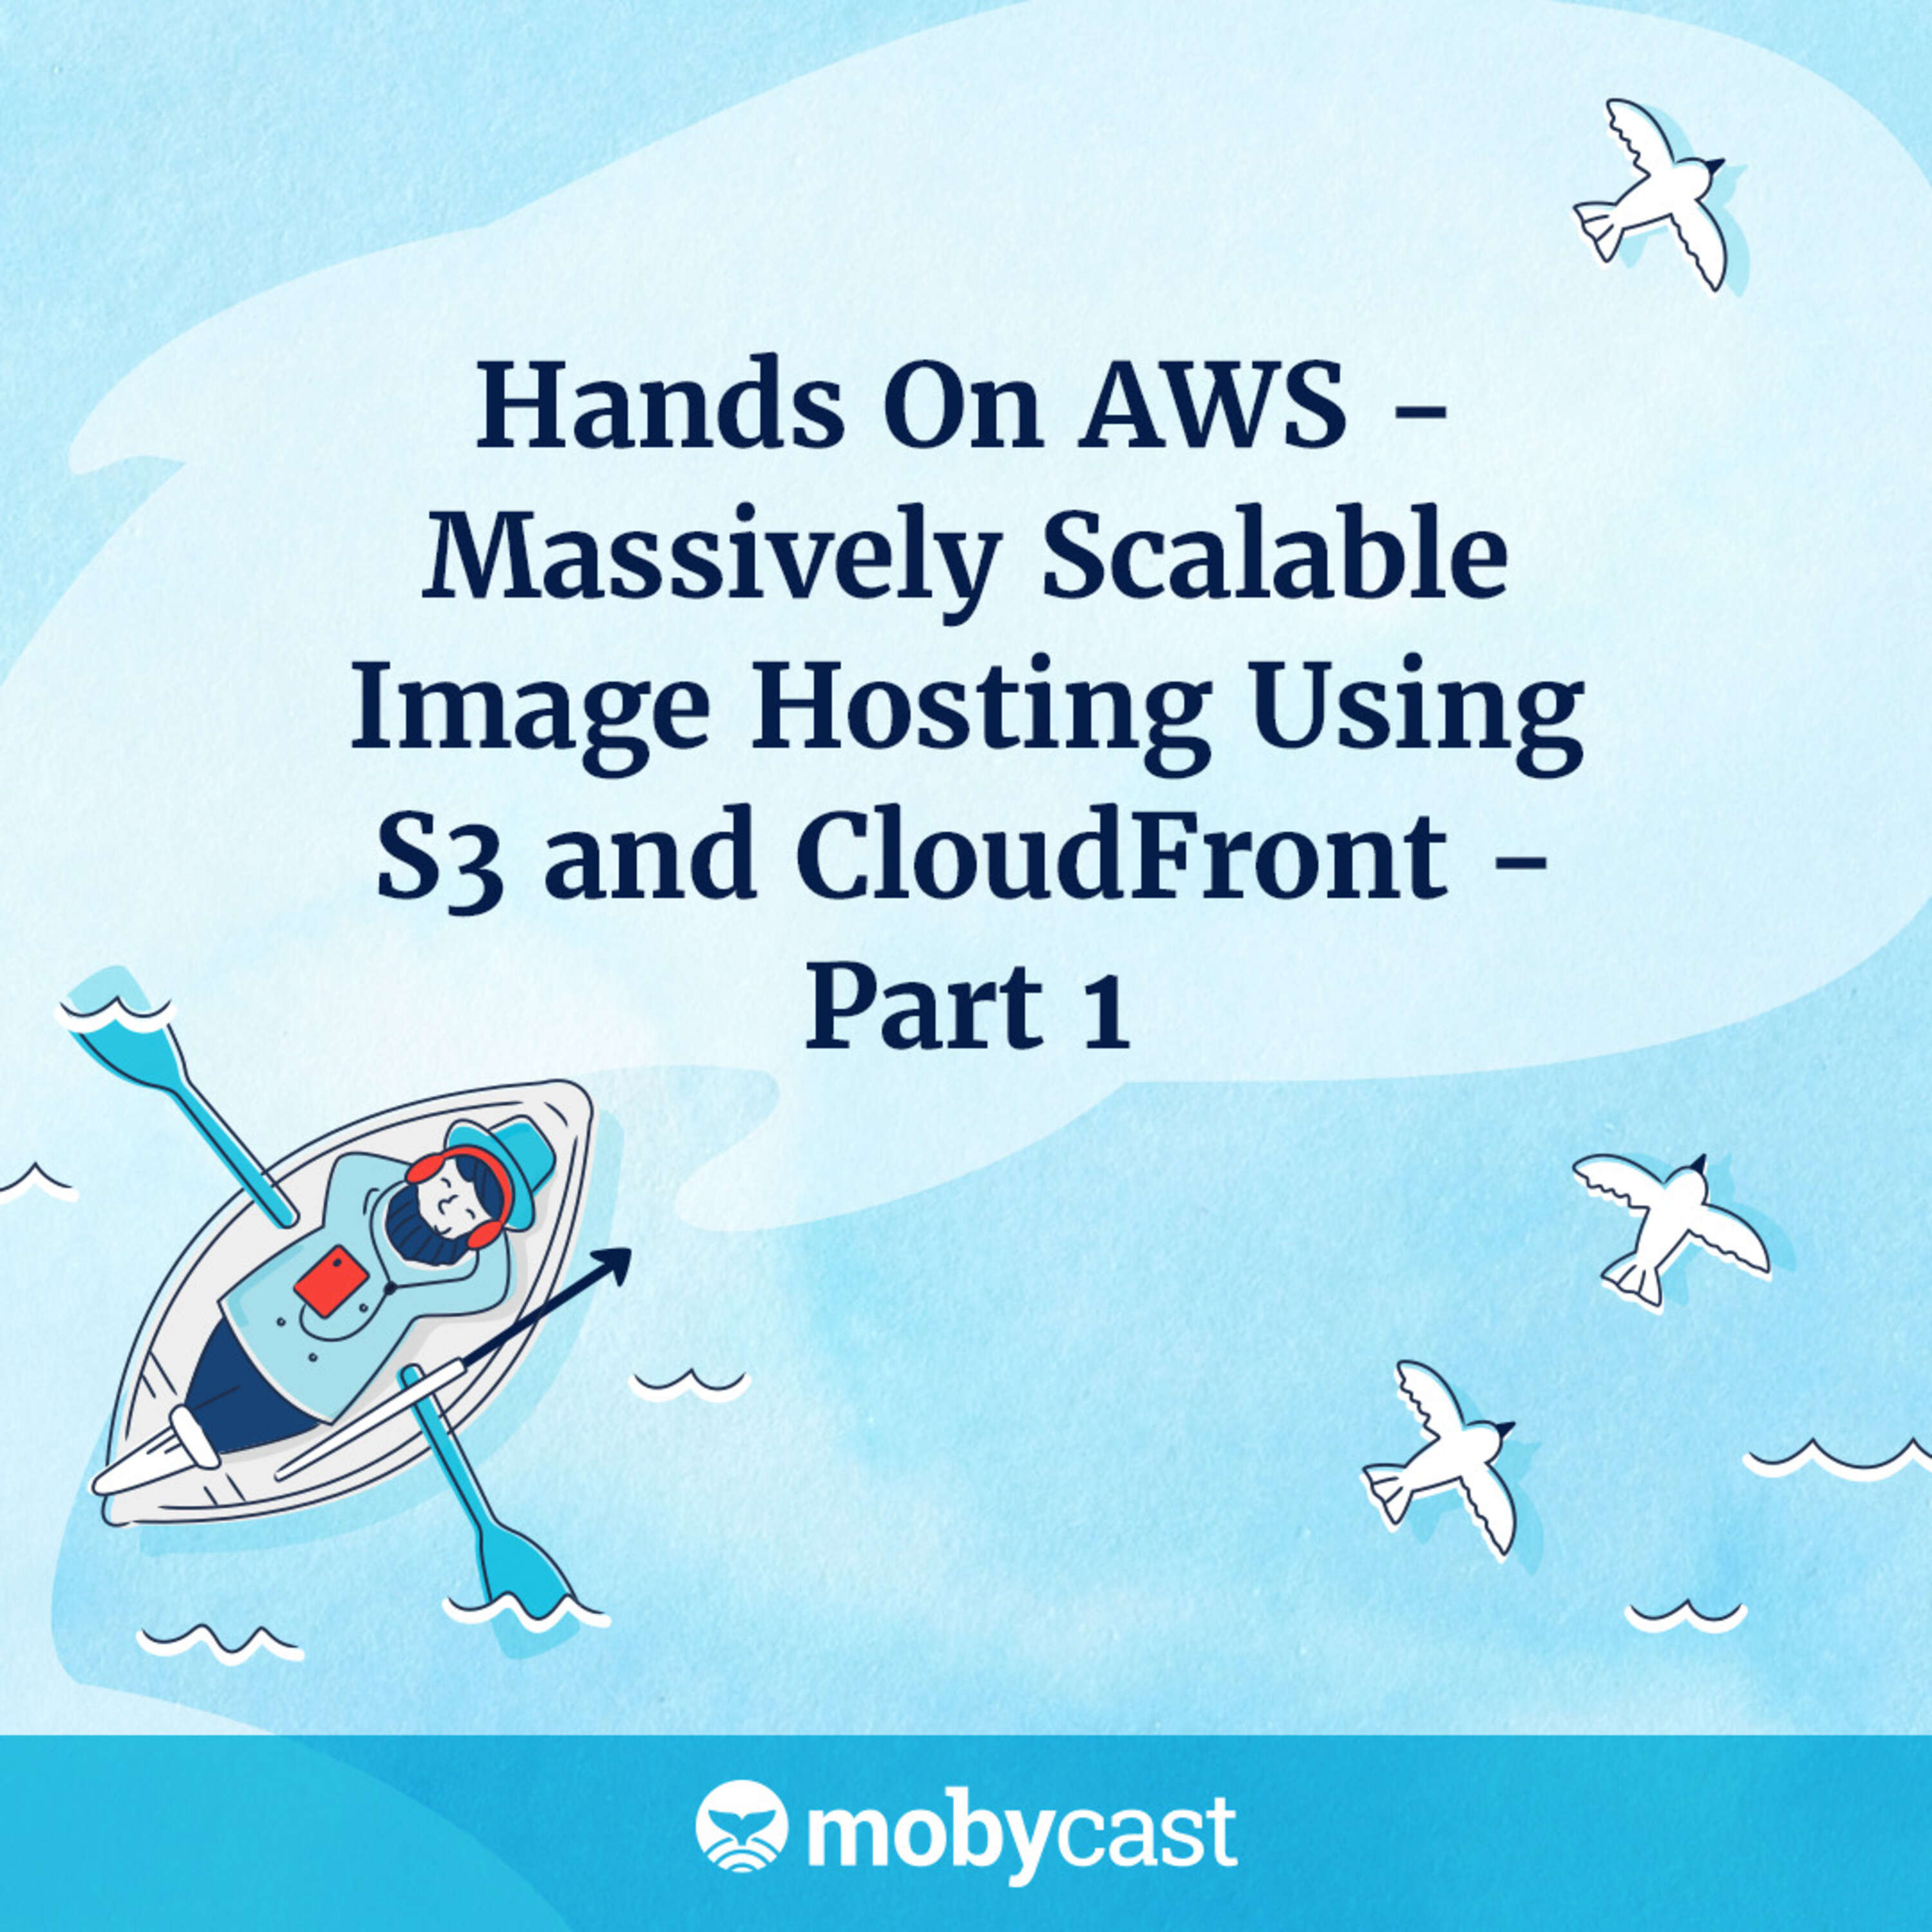 Hands On AWS - Massively Scalable Image Hosting Using S3 and CloudFront - Part 1